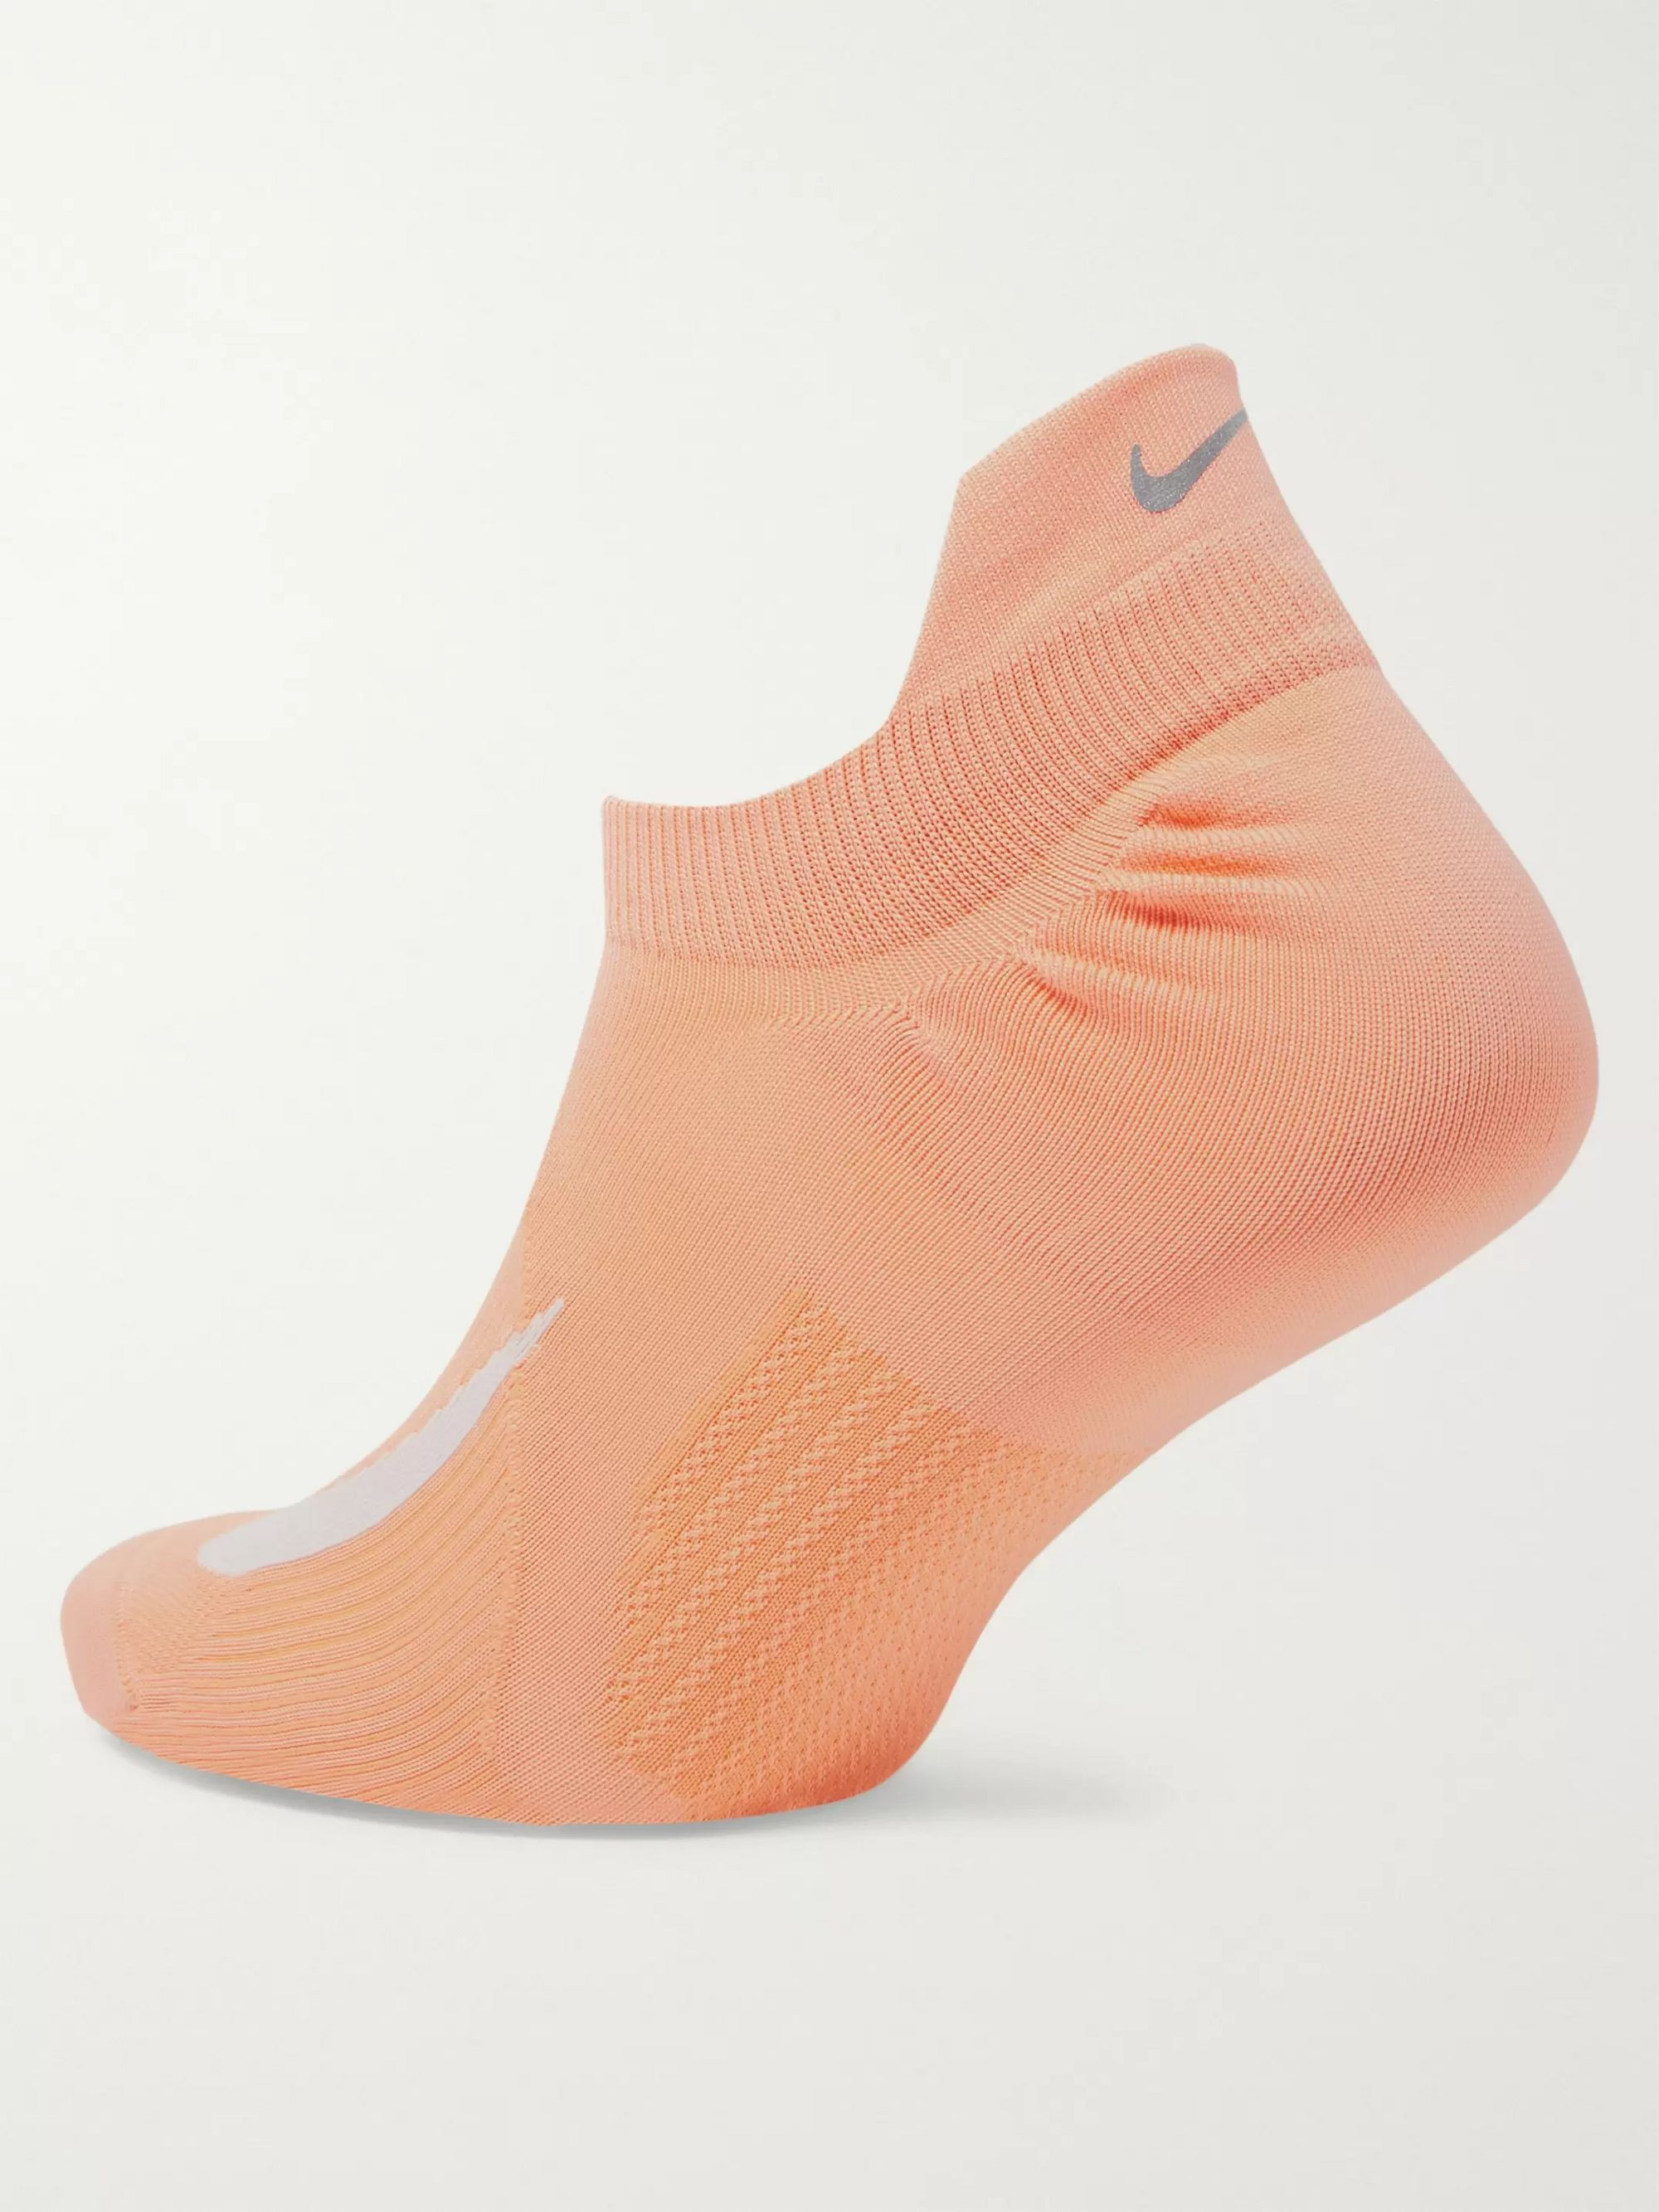 Nike Running Elite Lightweight Dri-FIT No-Show Running Socks